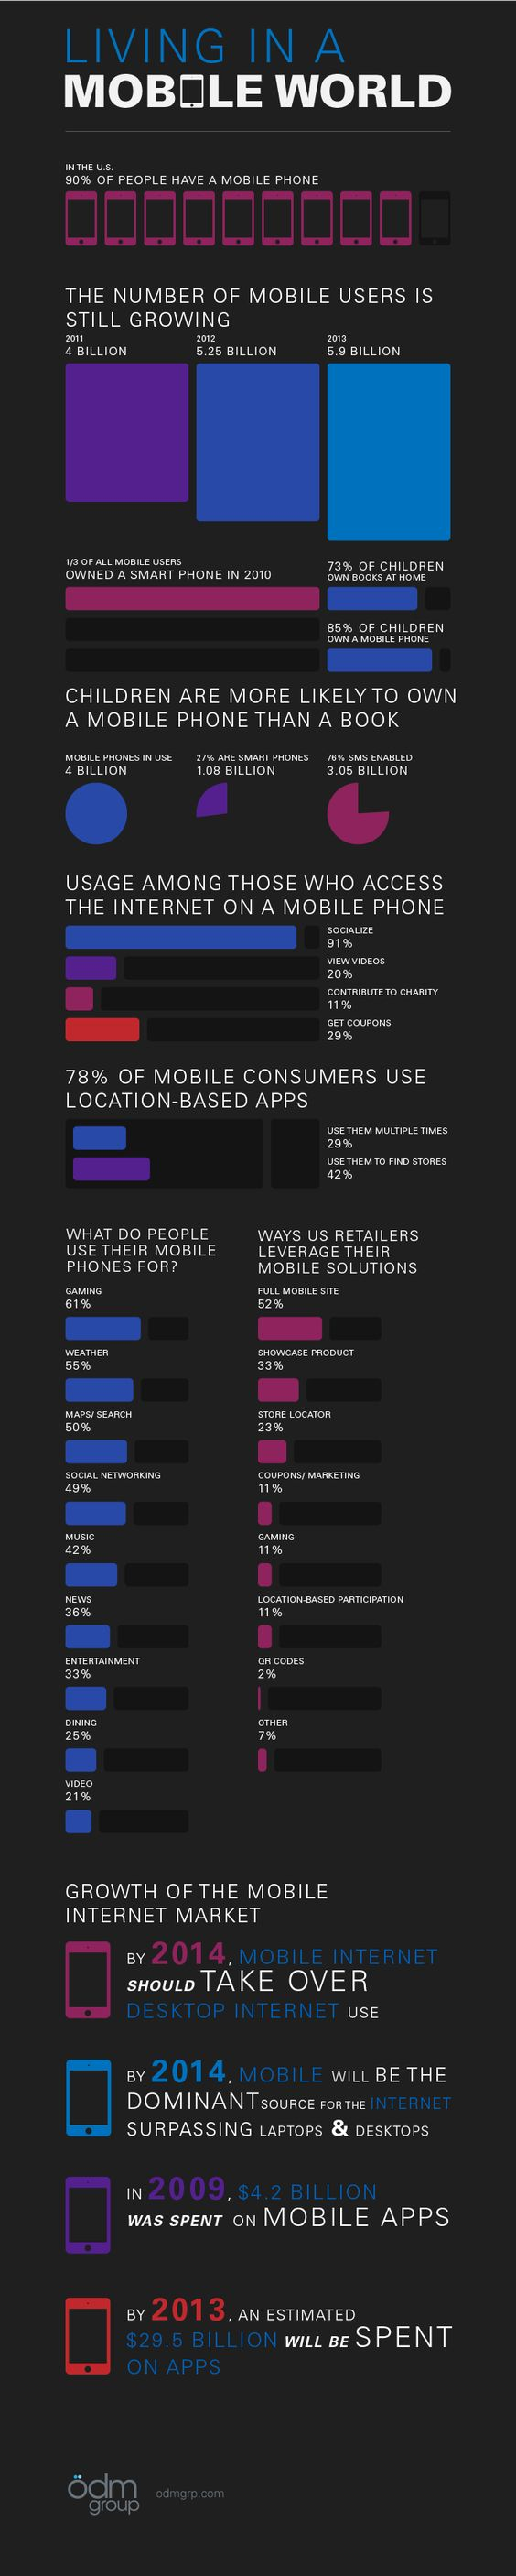 Living In A Mobile World - Infographic